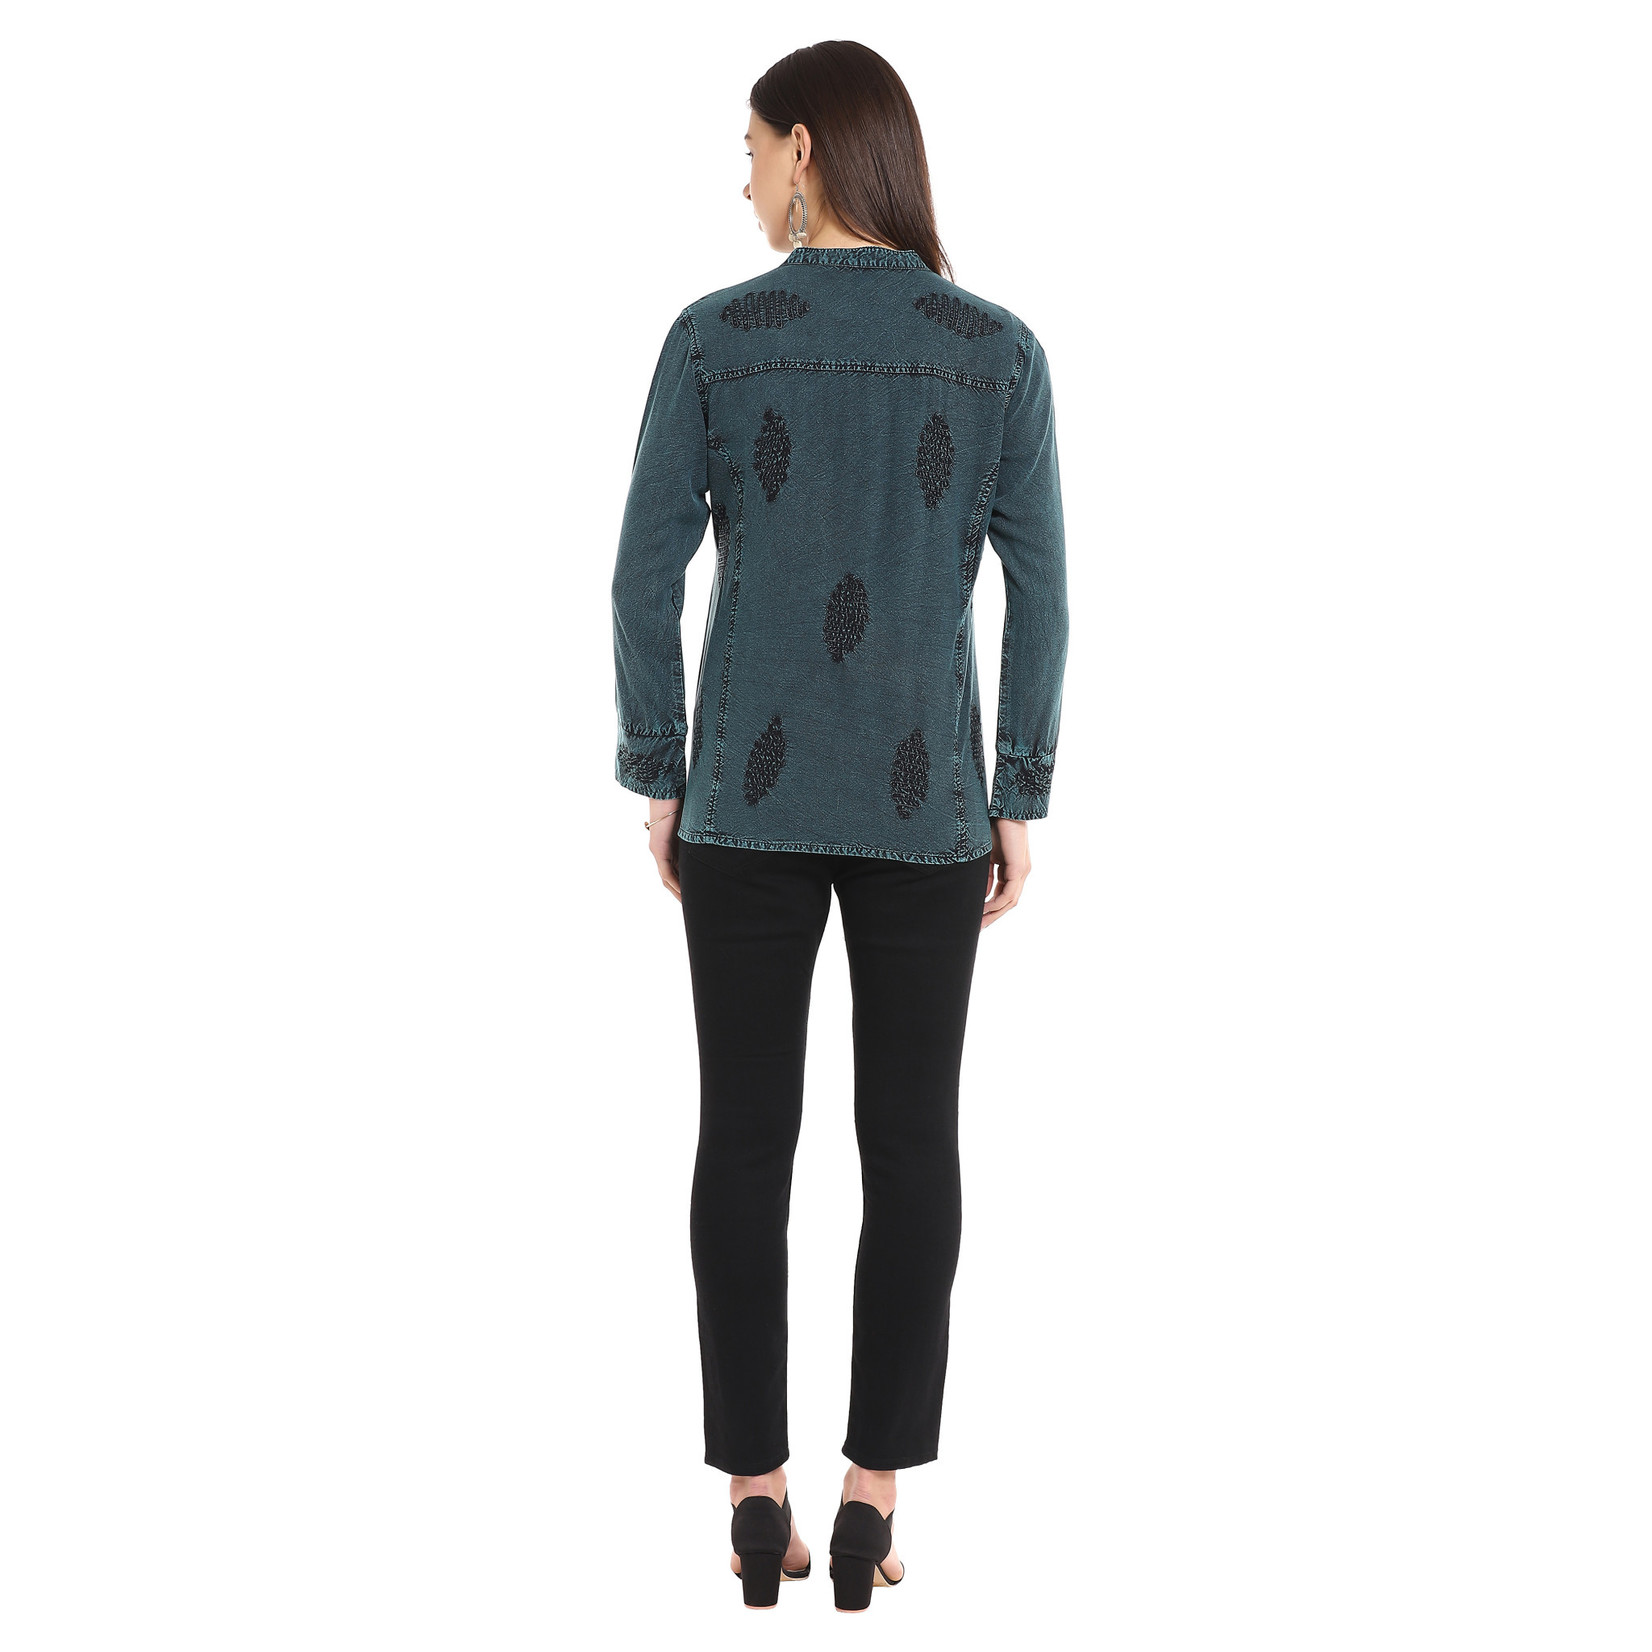 Parsley and Sage Honor Shirt in Teal